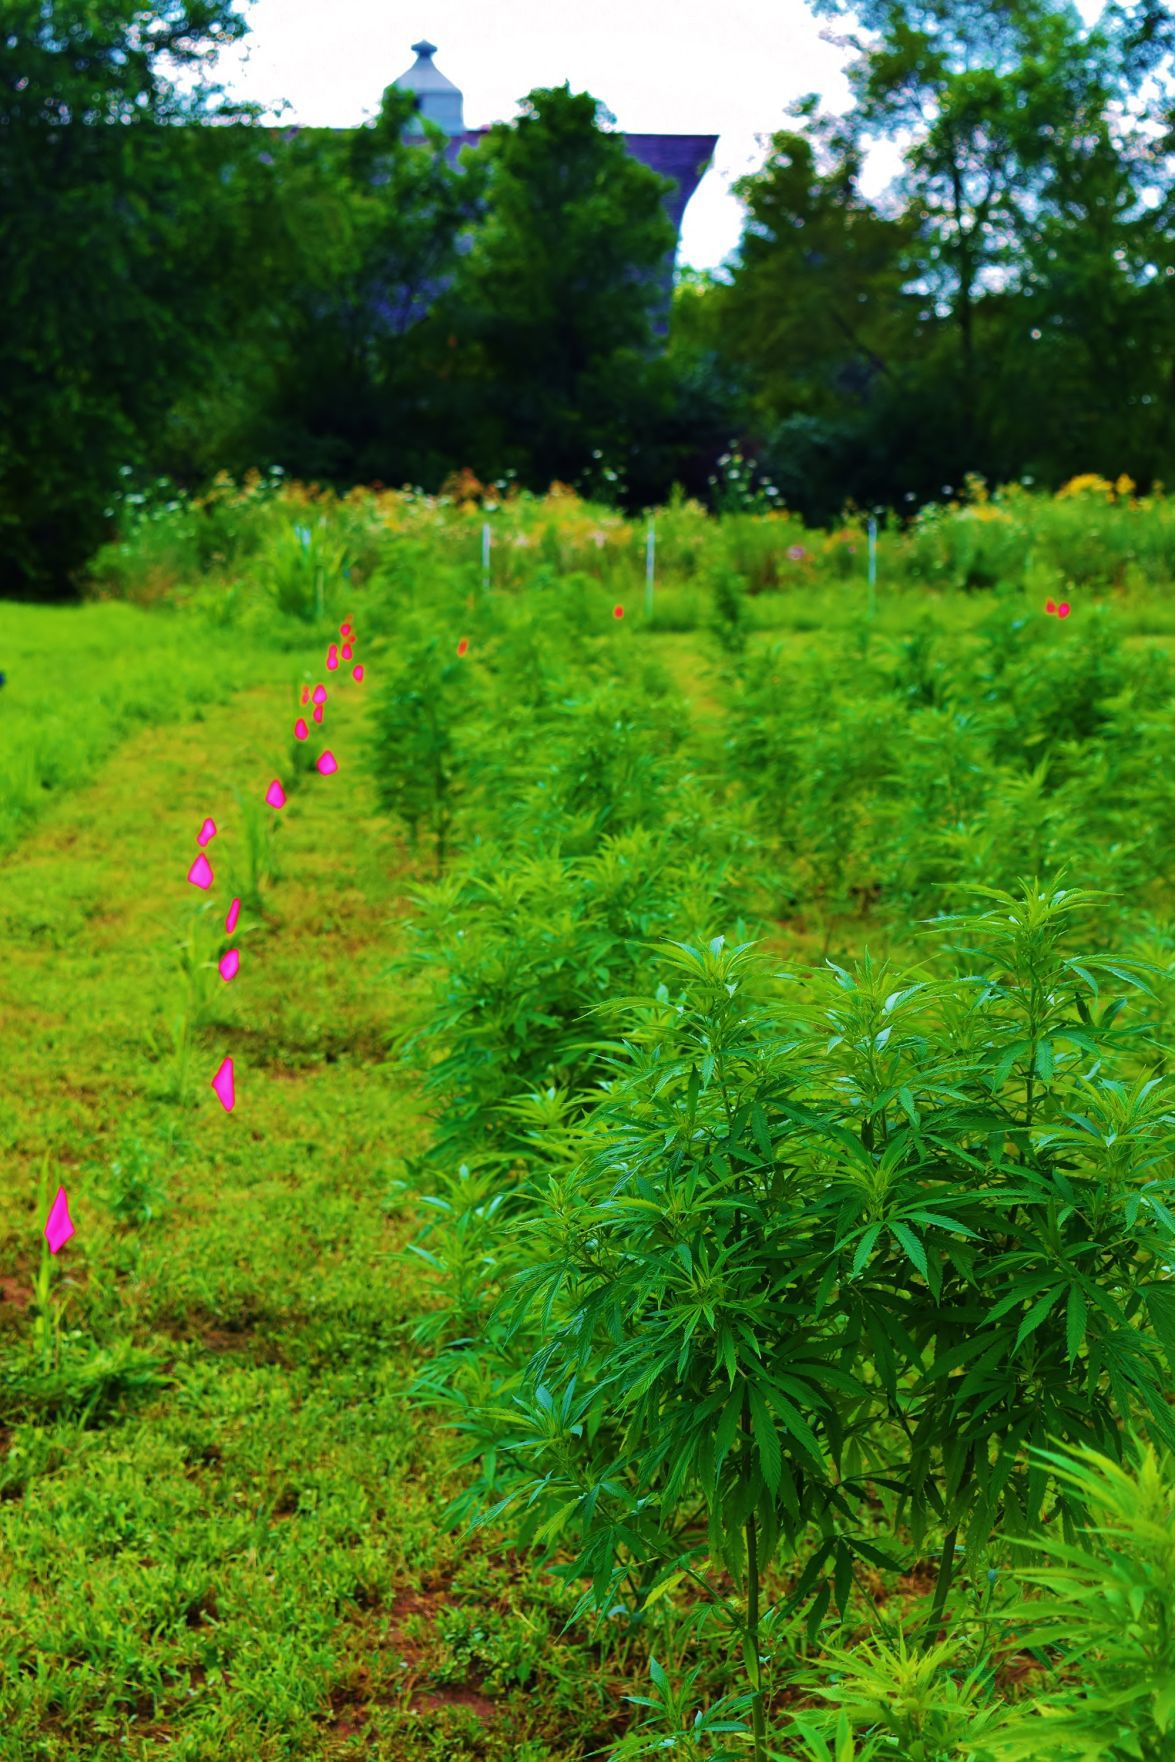 Test plots for evaluating hemp varieties for CBD production